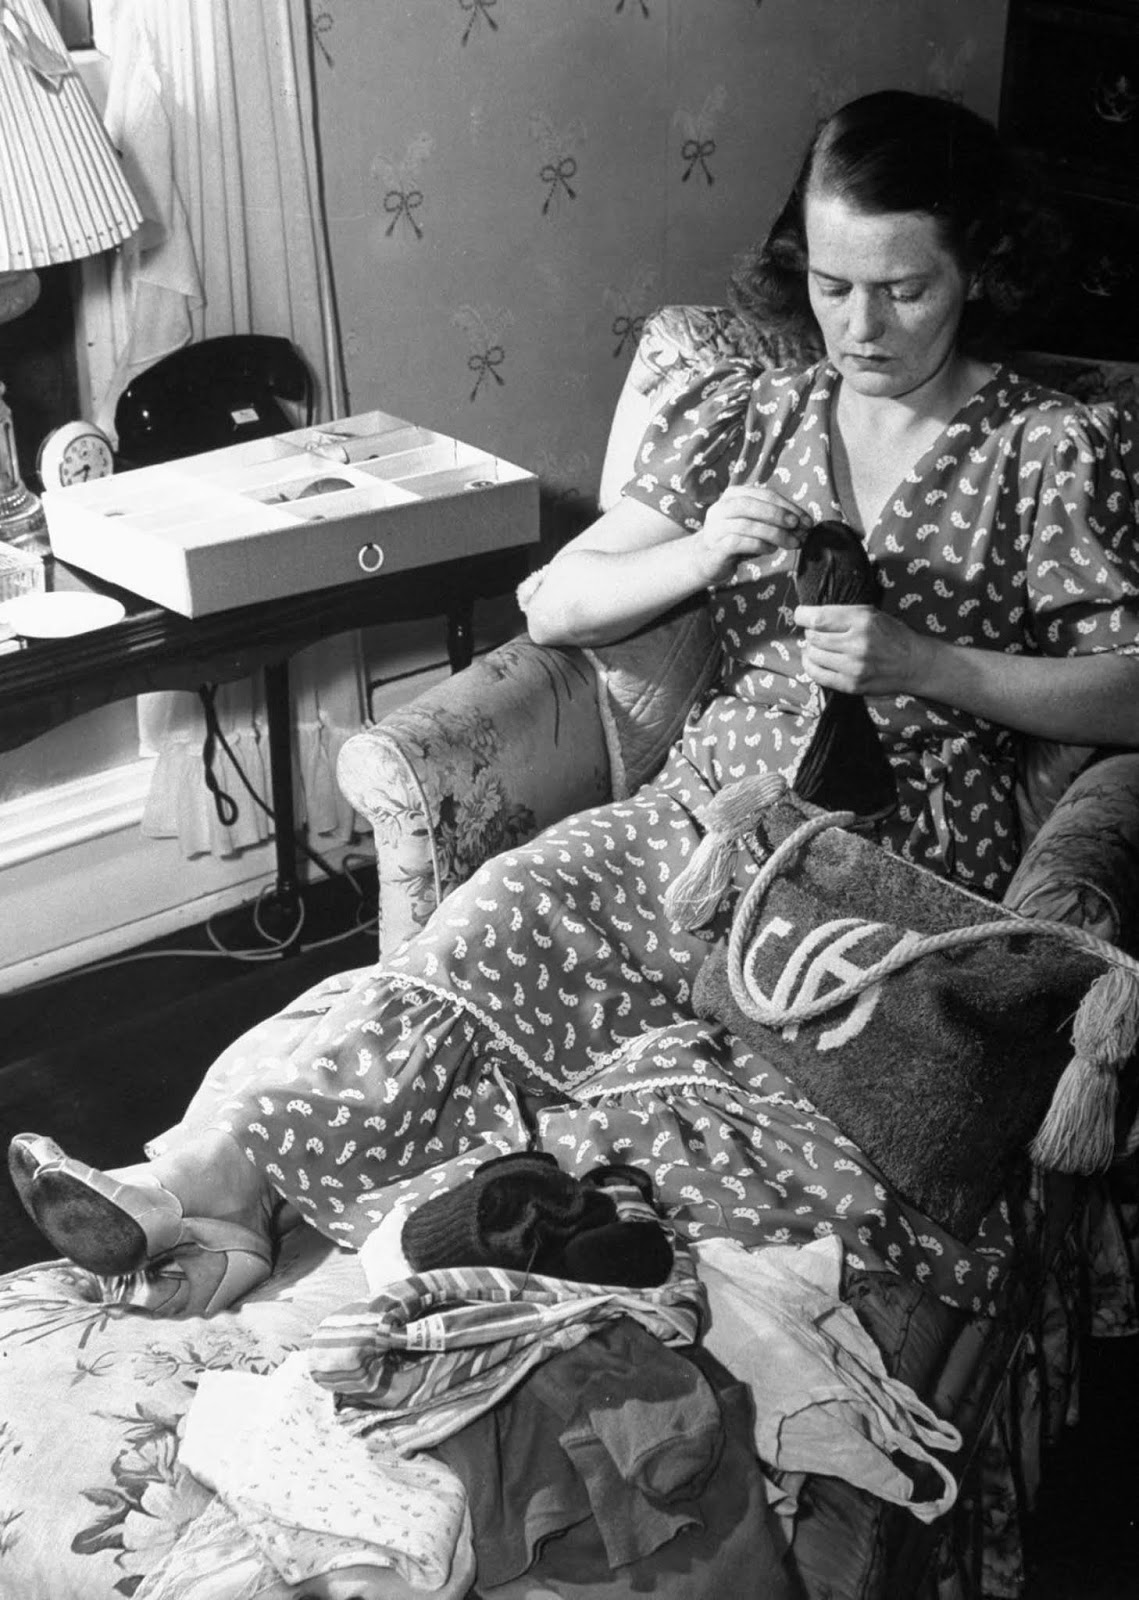 Jane mending a pair of socks as she lounges in bedroom while listening to her favorite jazz records during her leisure hours (time with out kids).